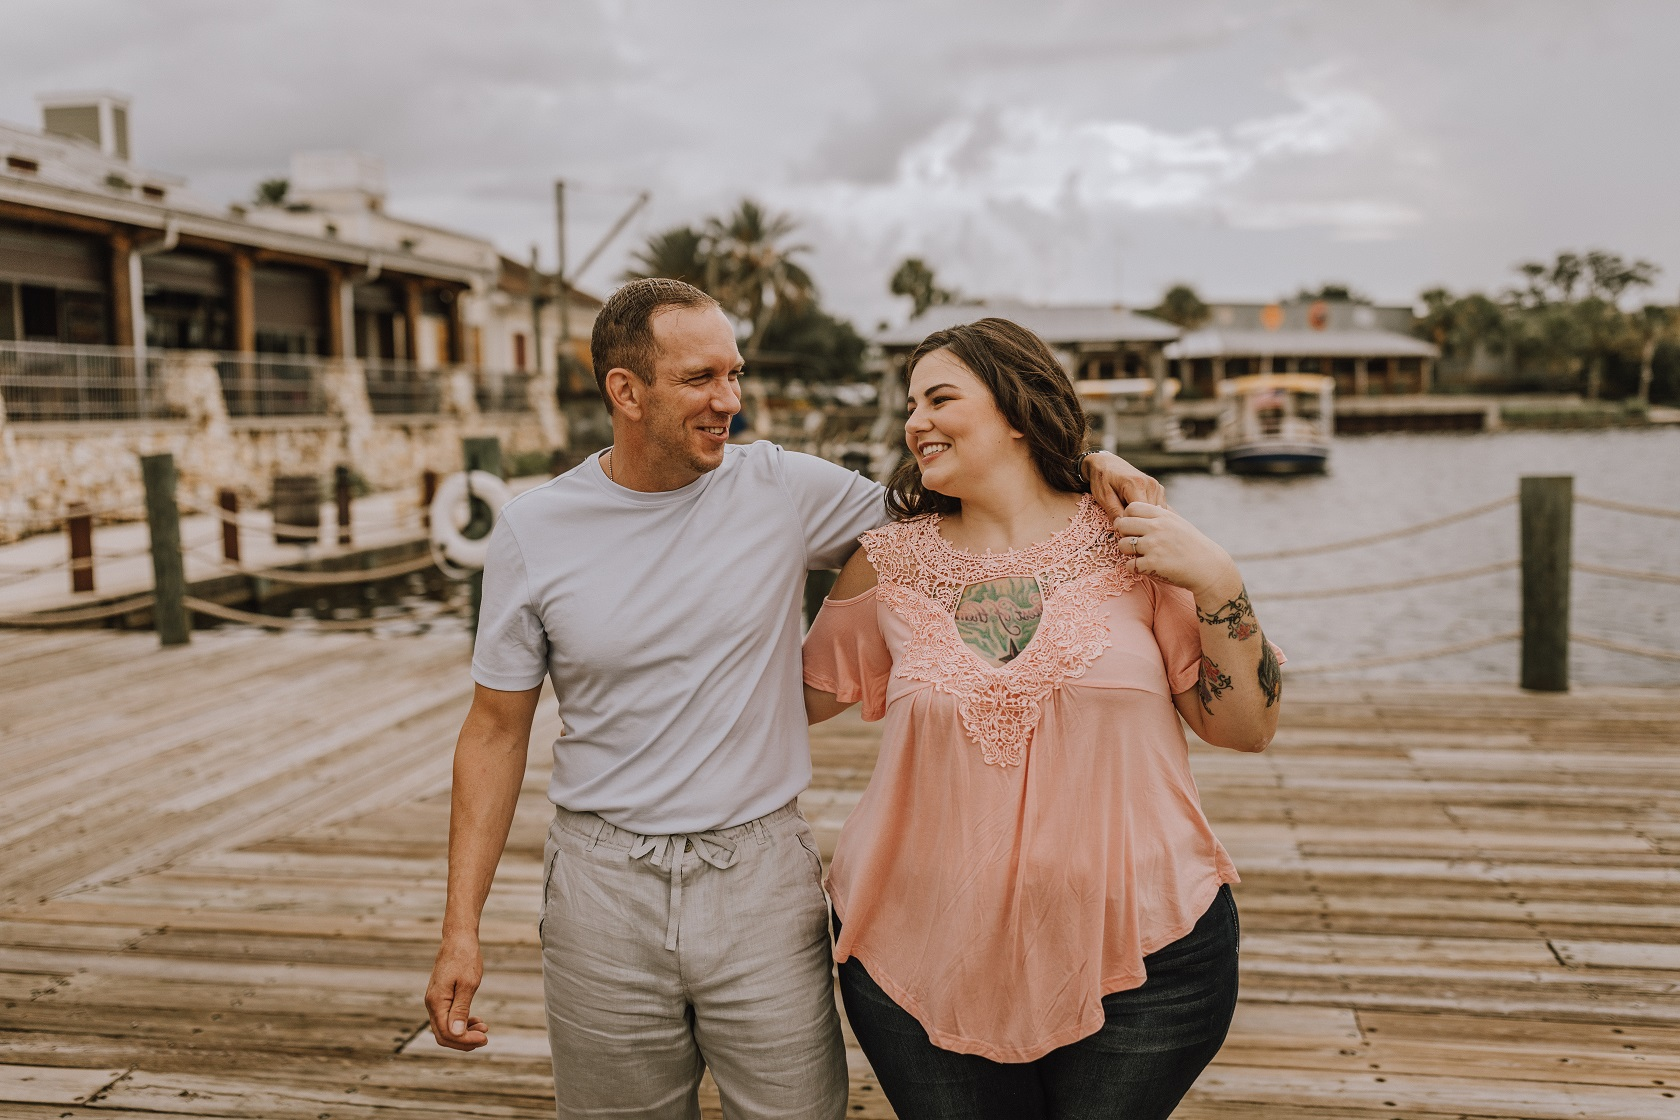 The Villages Florida-Engagement Session-Dana and Toby-41.jpg